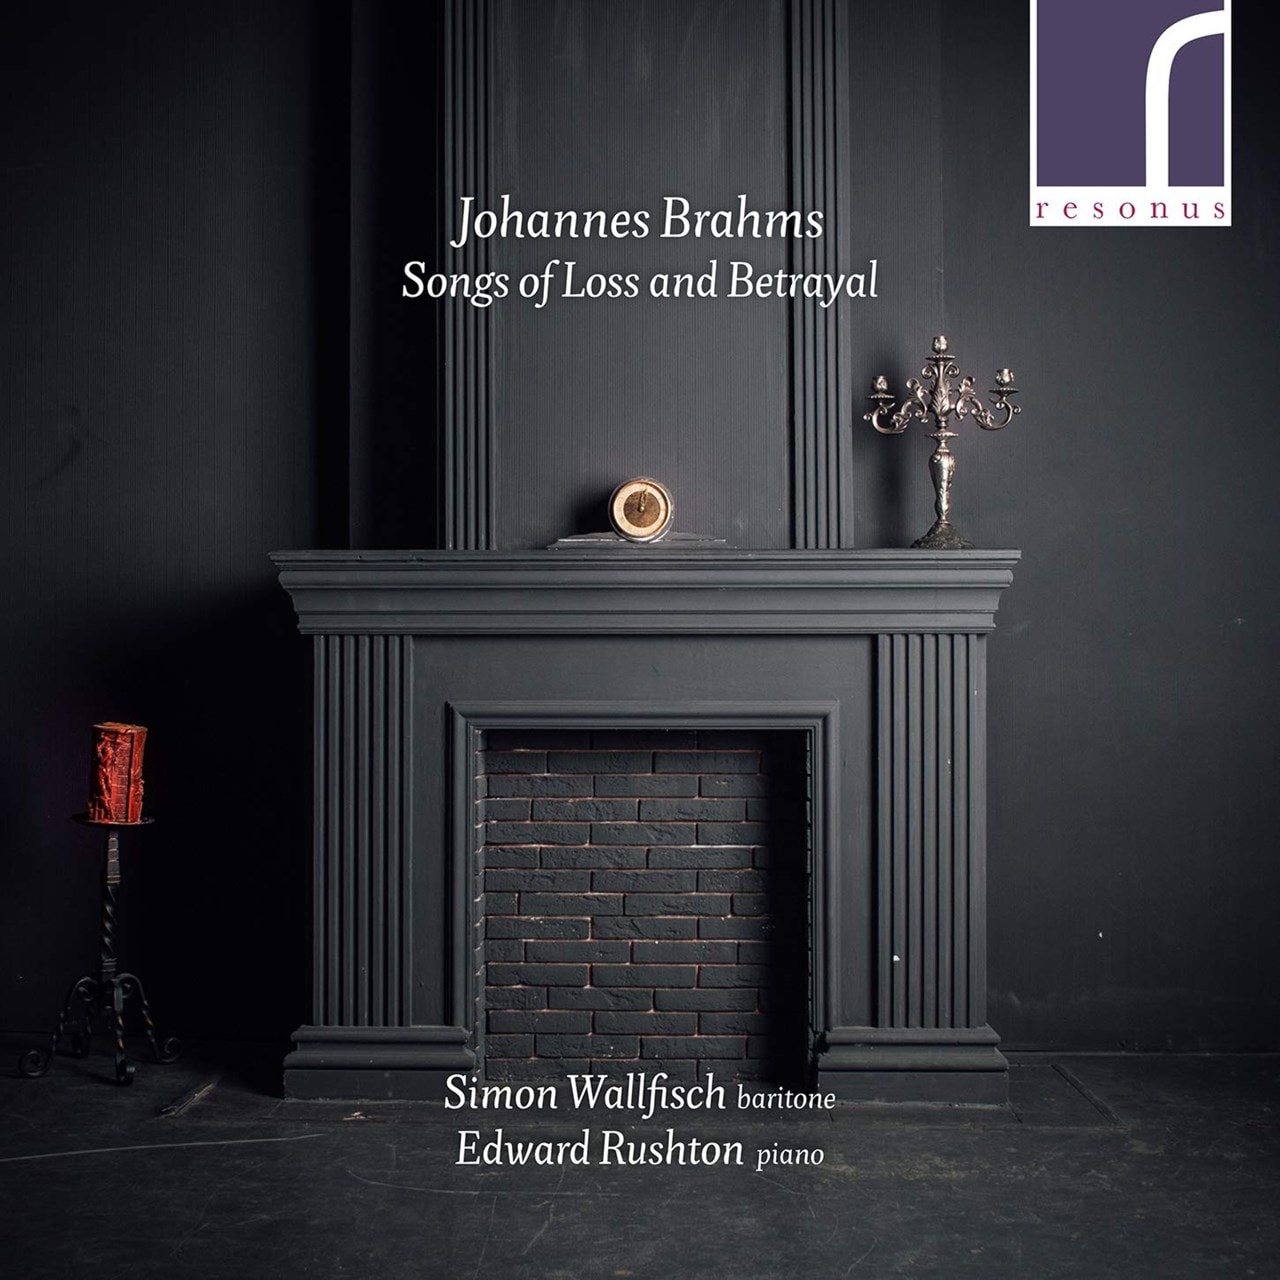 Johannes Brahms: Songs of Loss and Betrayal - 1